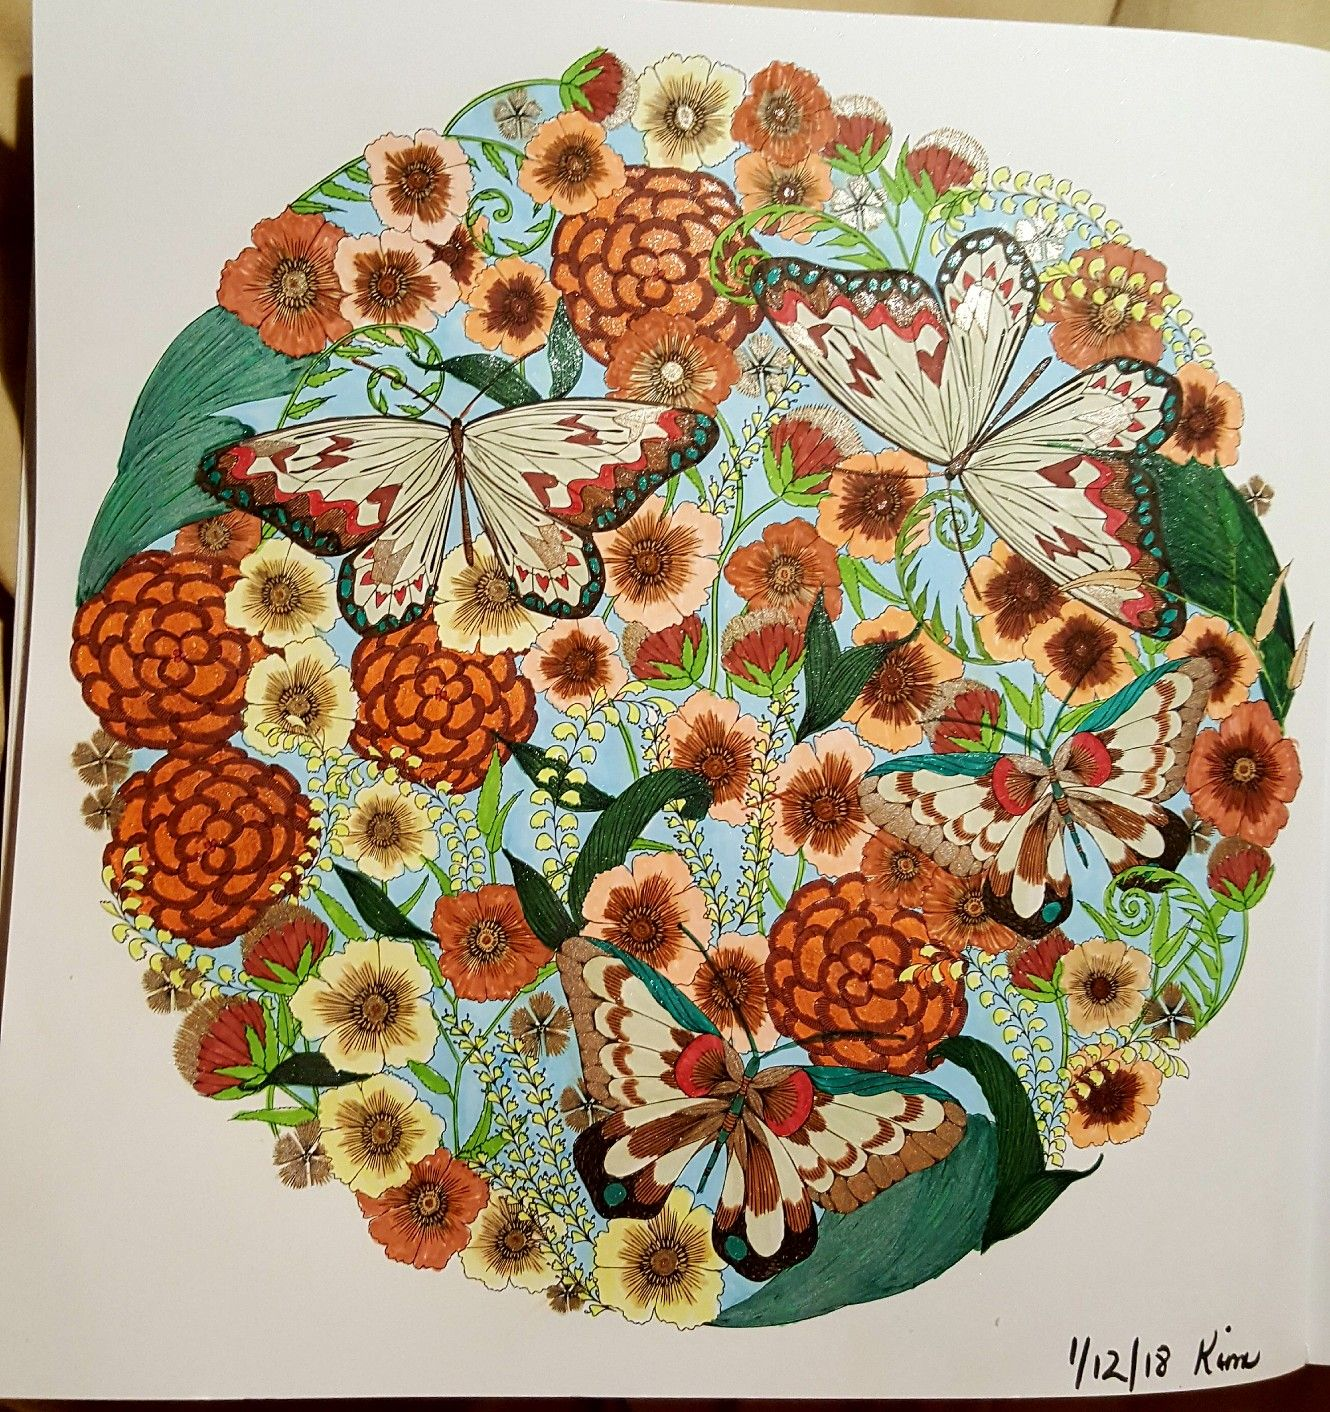 Millie Marotta Coloring Book Used Pitt Artist Pens By Faber Castell And A Few Glitter Pens For Millie Marotta Coloring Book Pitt Artist Pens Millie Marotta